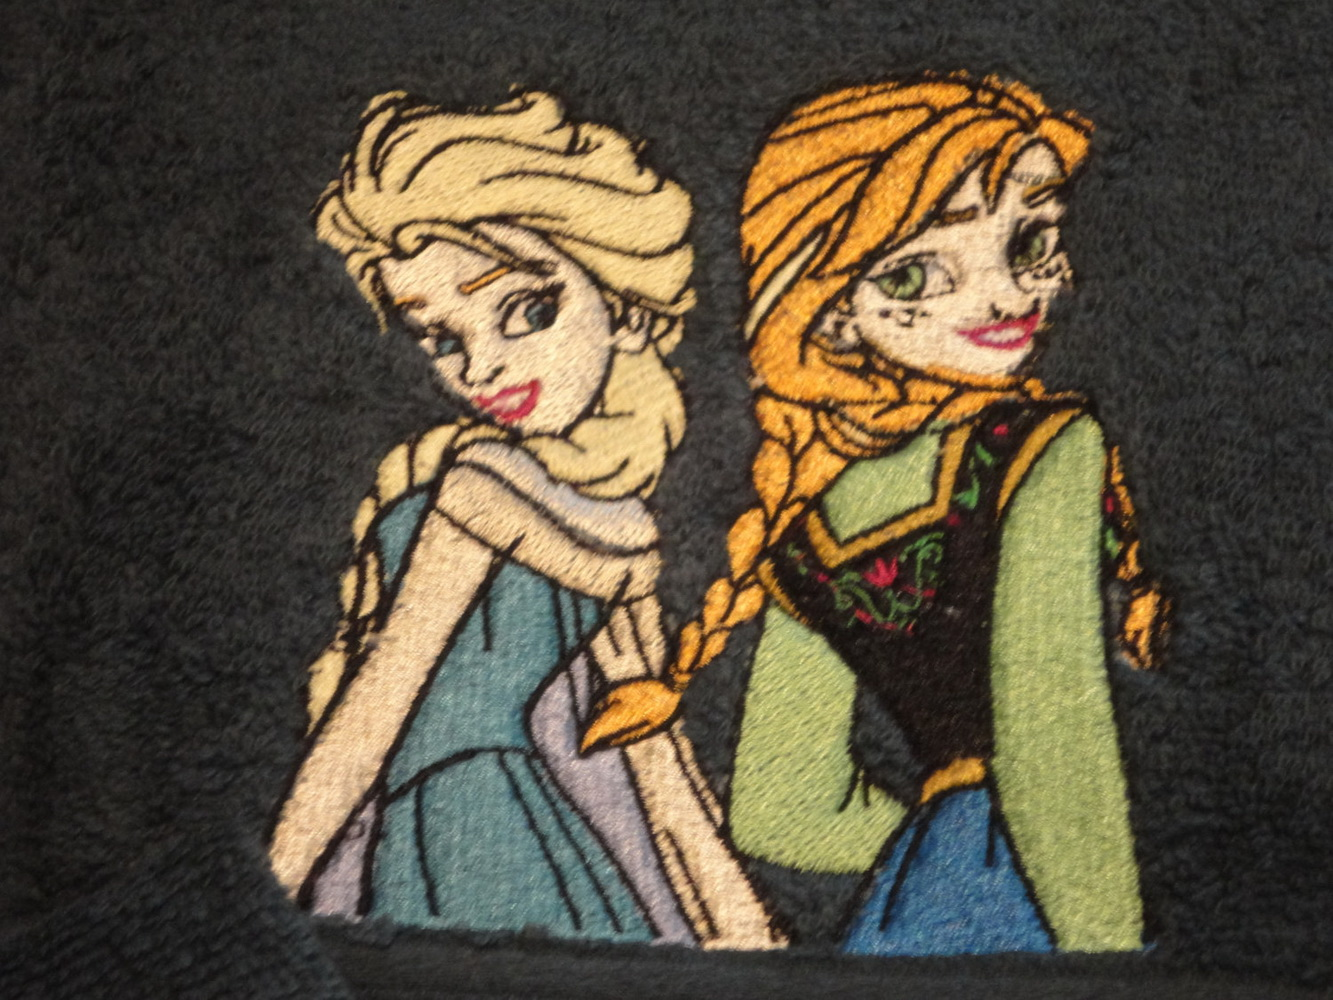 Frozen sisters design on towel embroidered